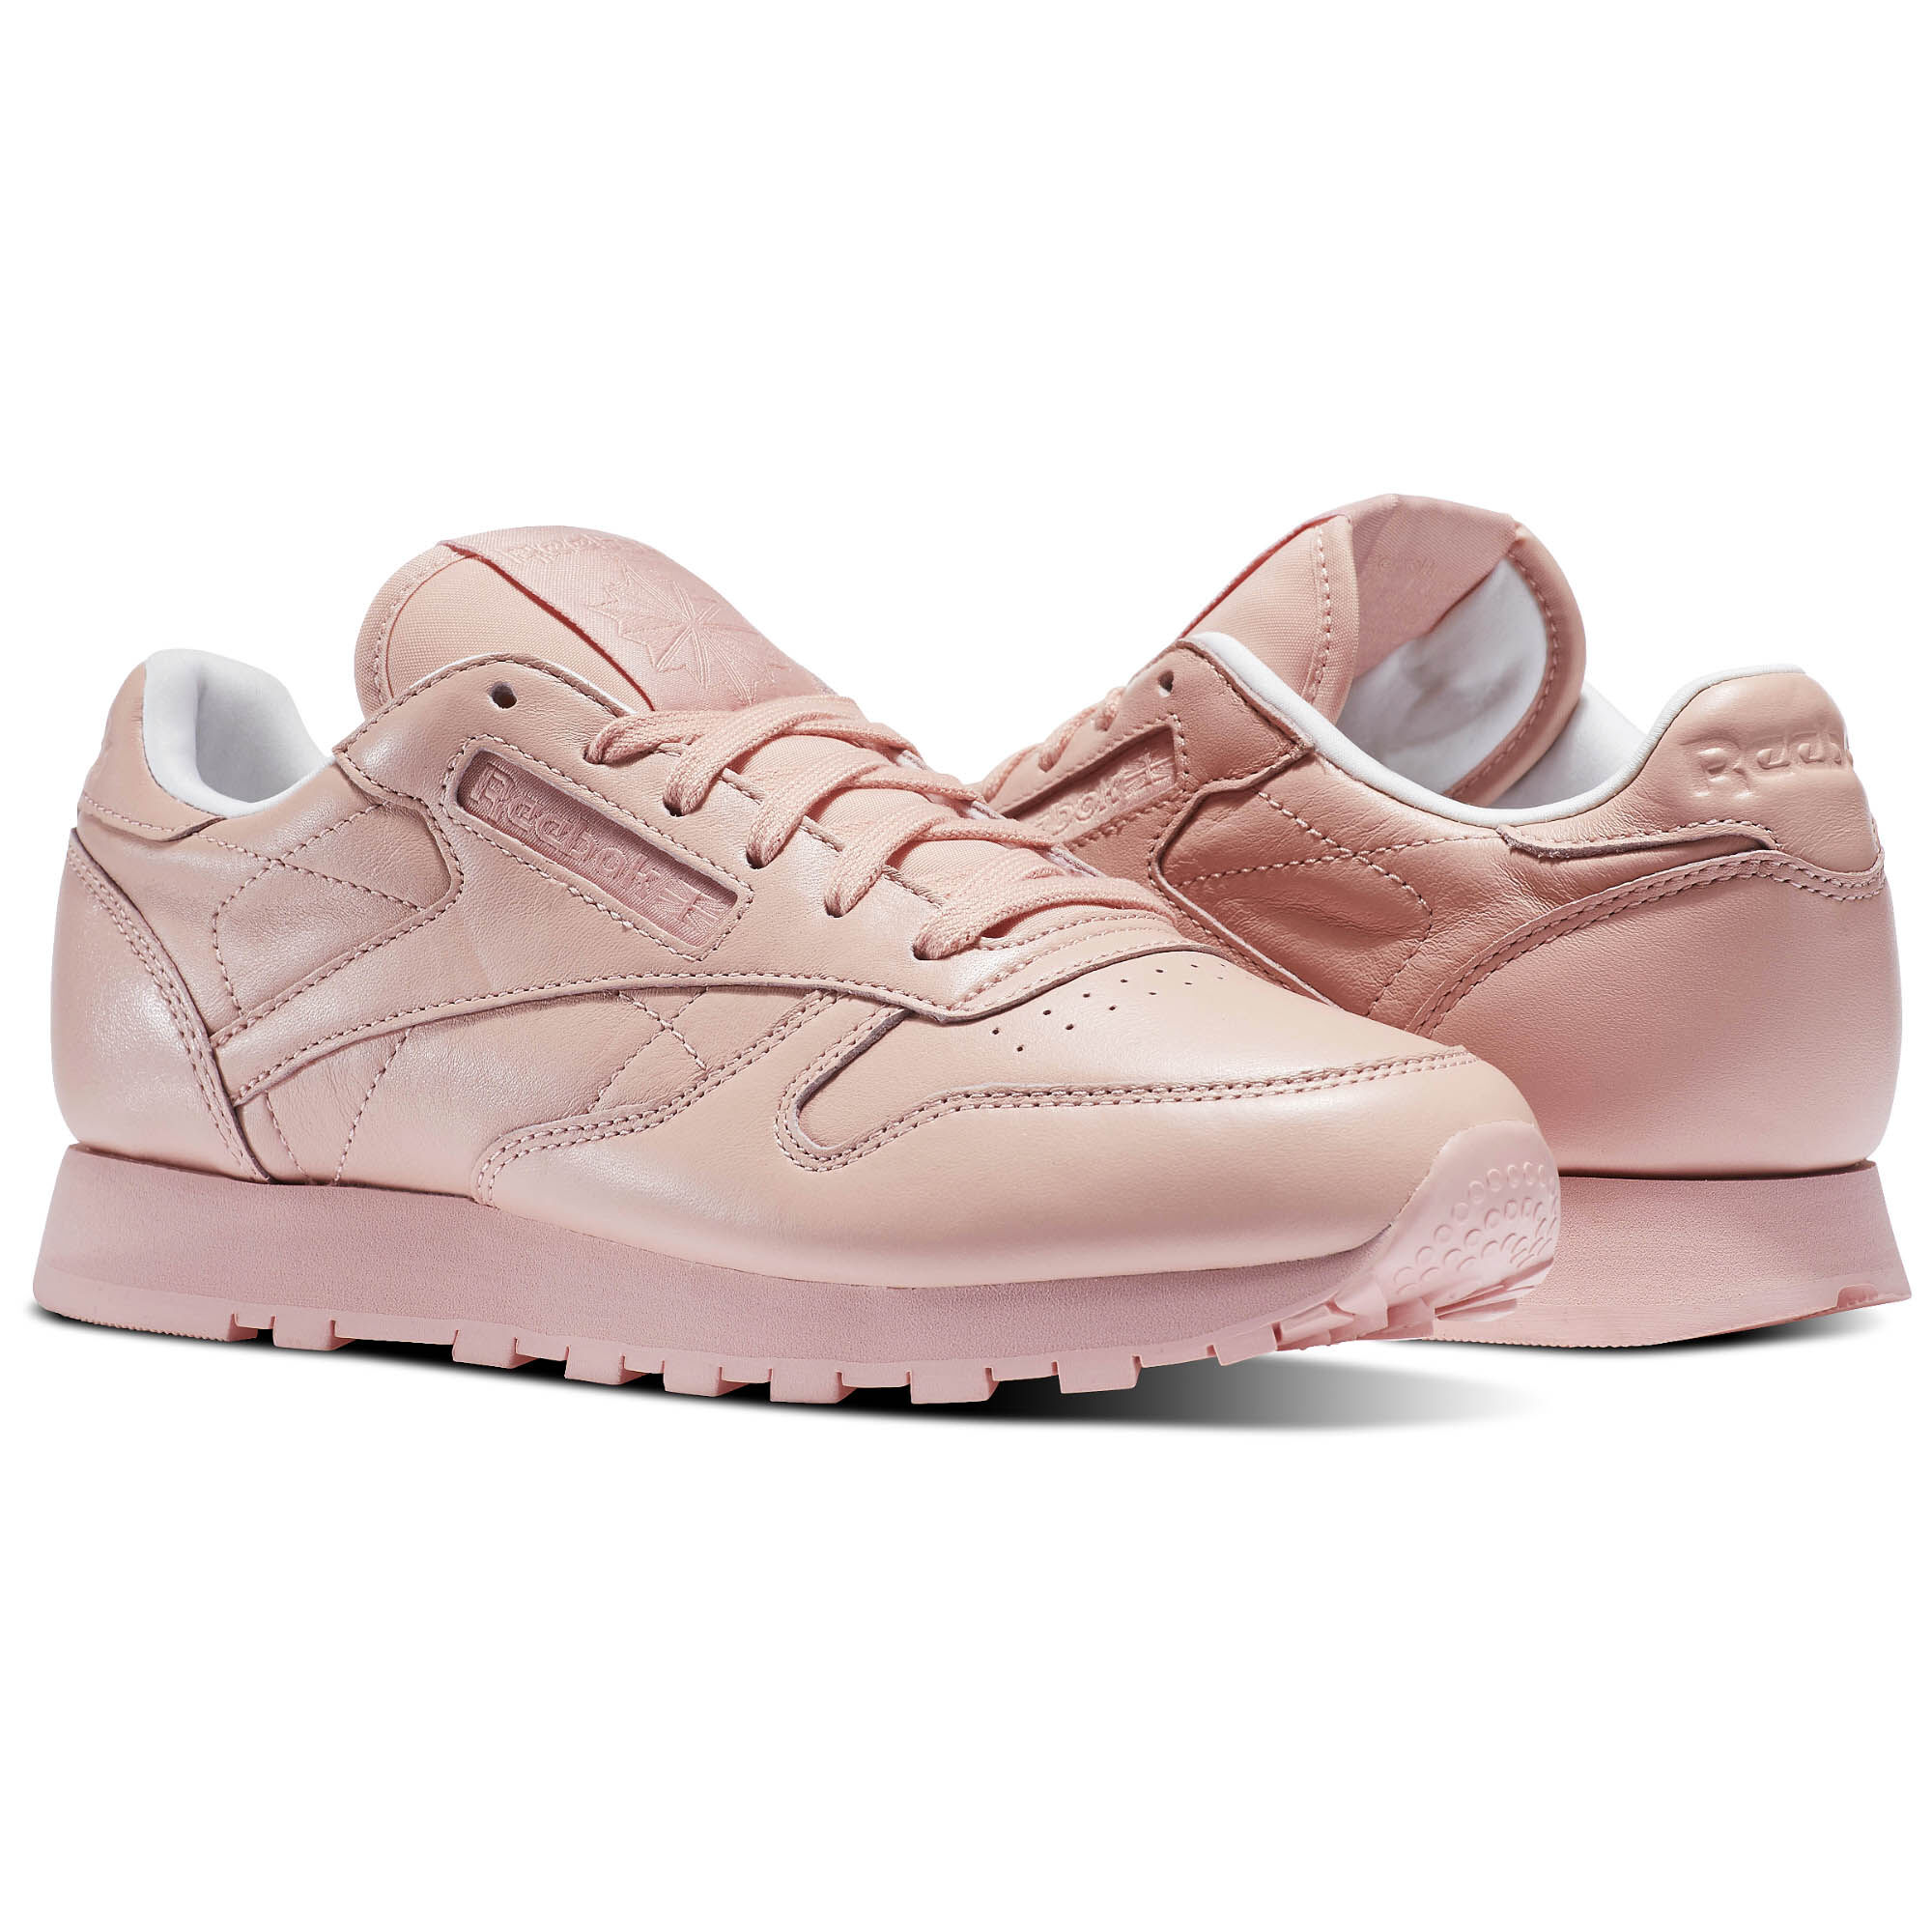 fca11644856ac6 Buy reebok classic leather patina pink retro trainers   OFF53 ...